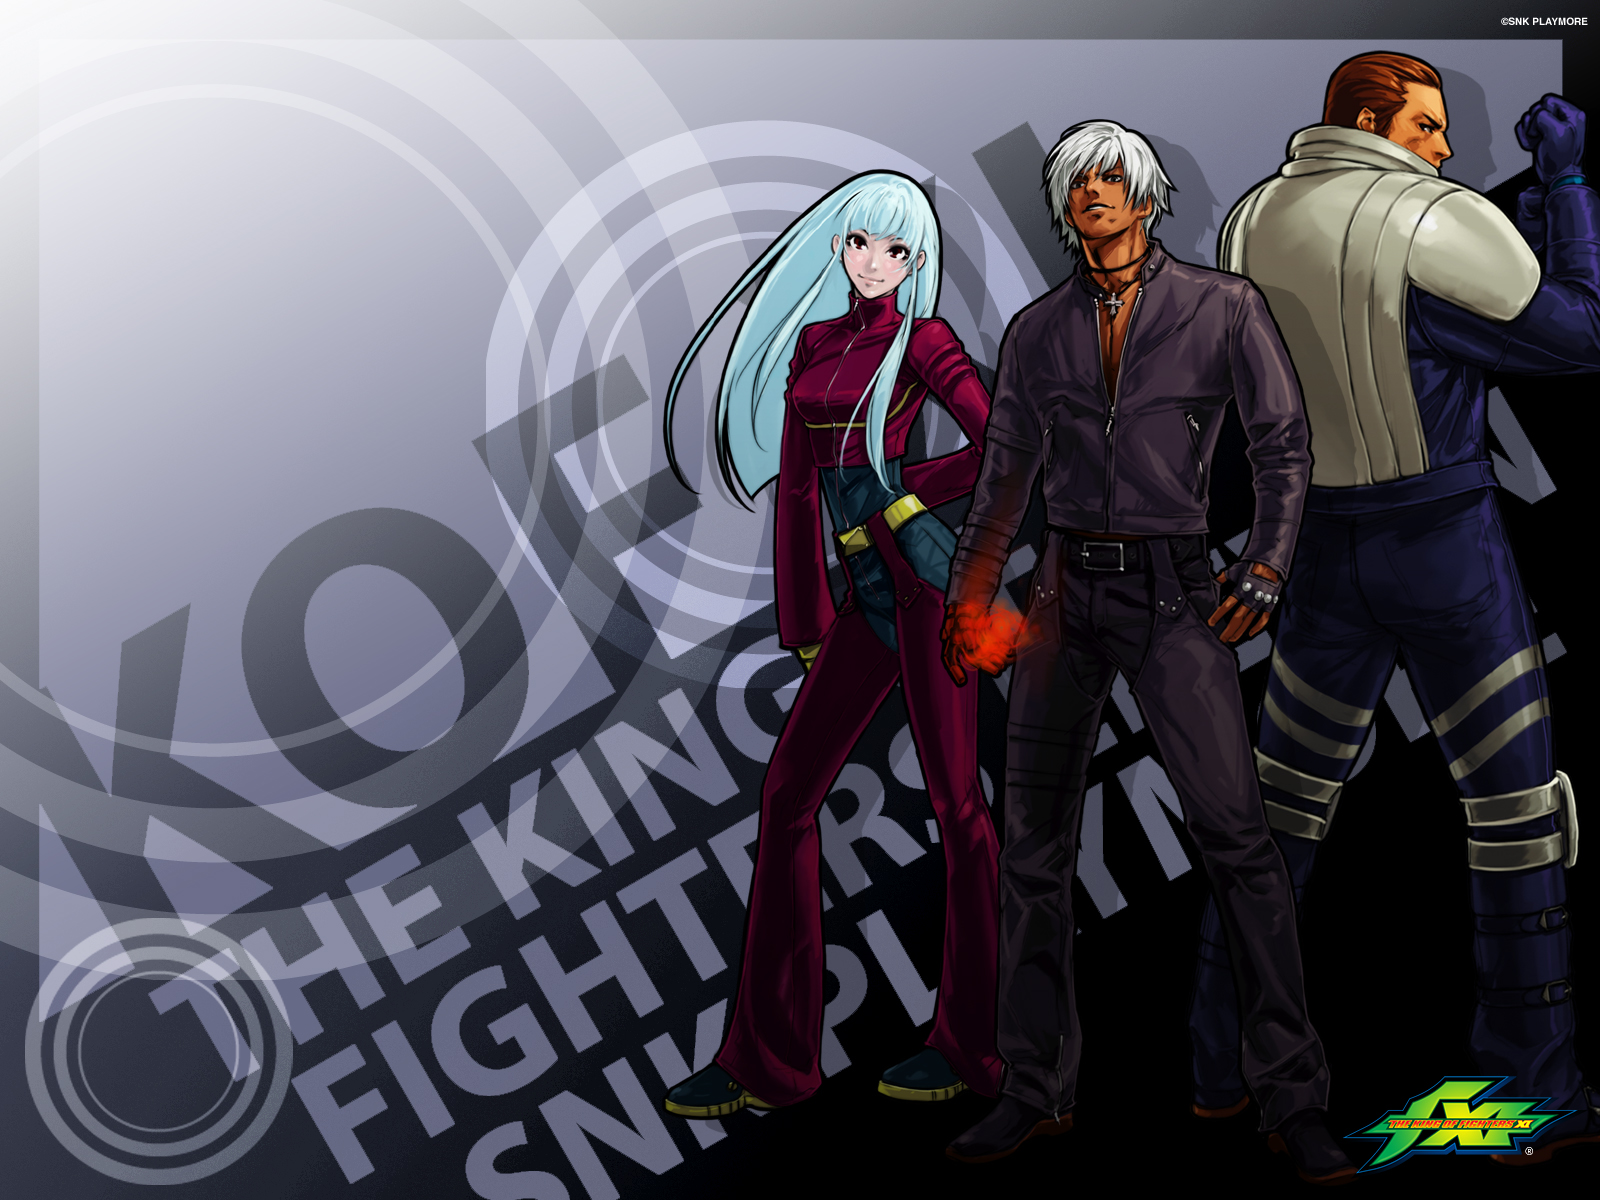 The King Of Fighters Wallpaper Zerochan Anime Image Board